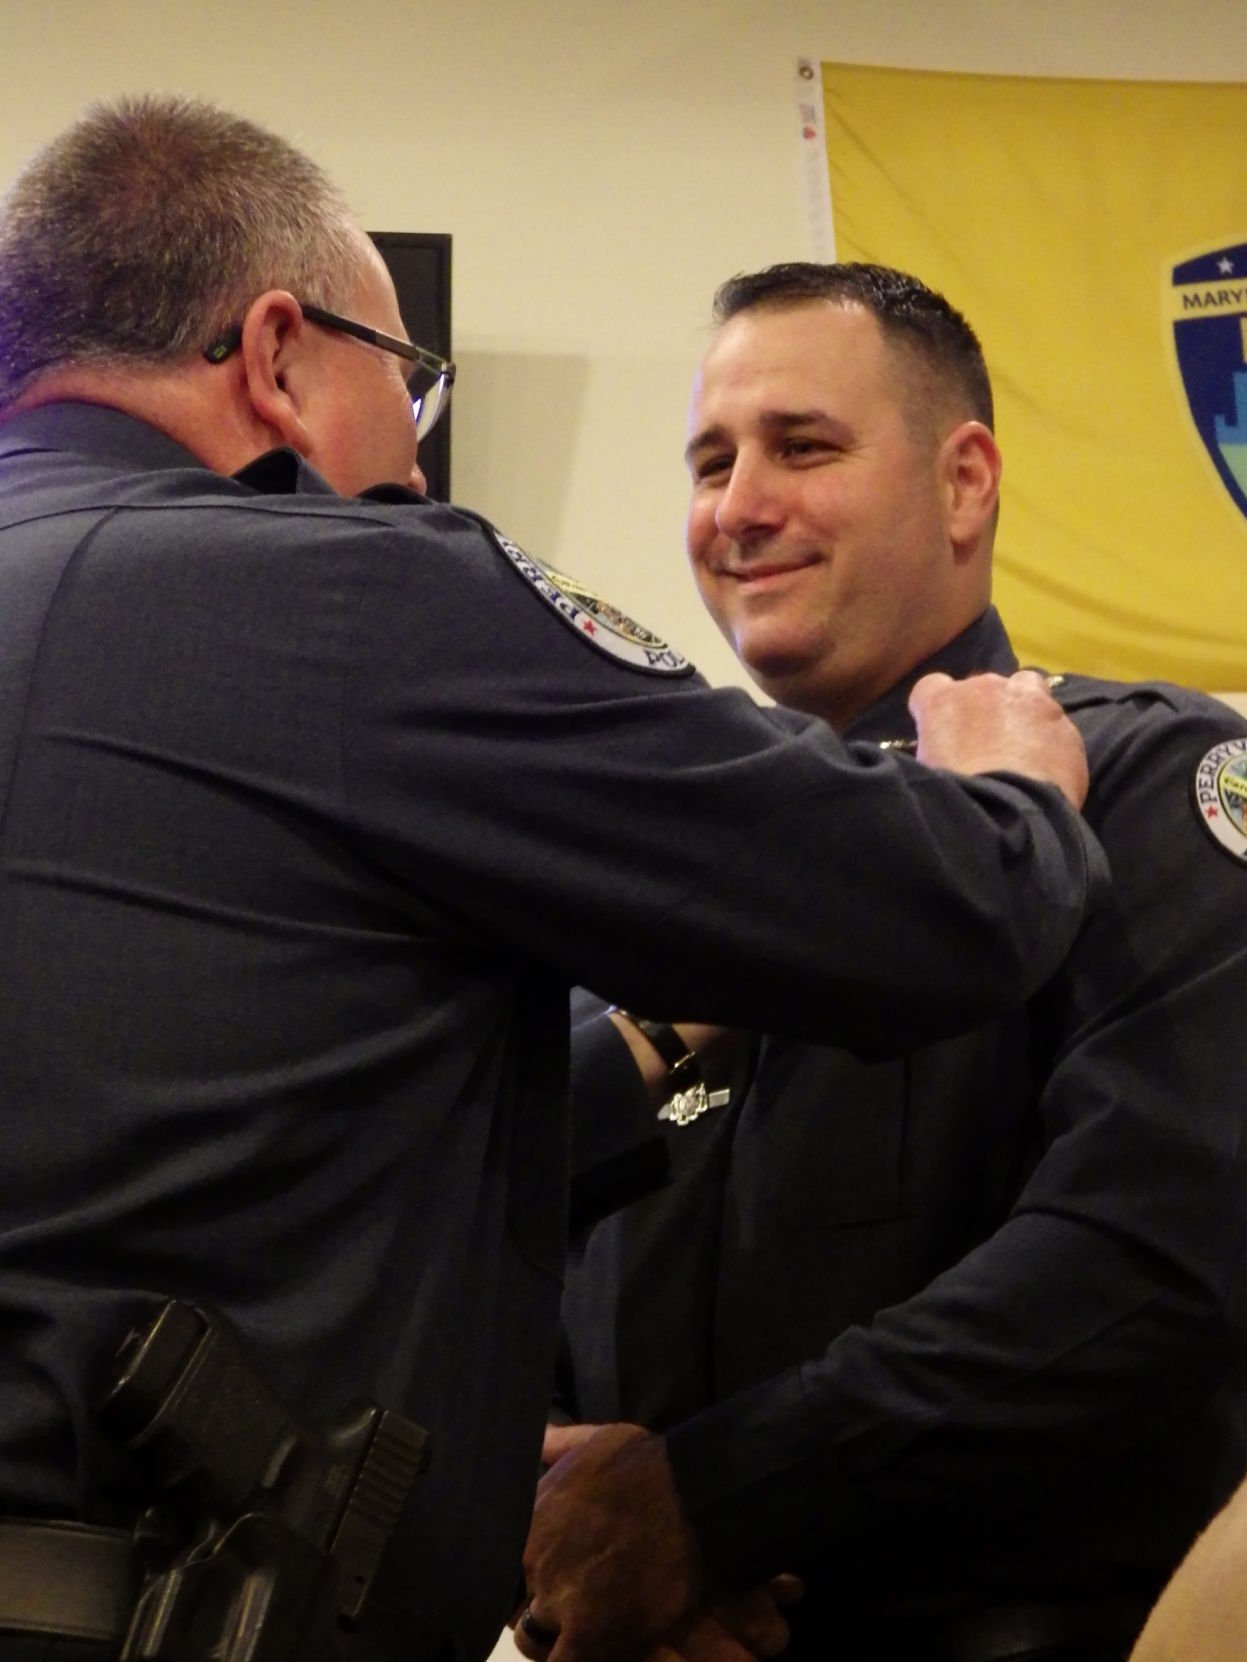 Chief Nitz moved his way up the ranks of the Perryville Police Department